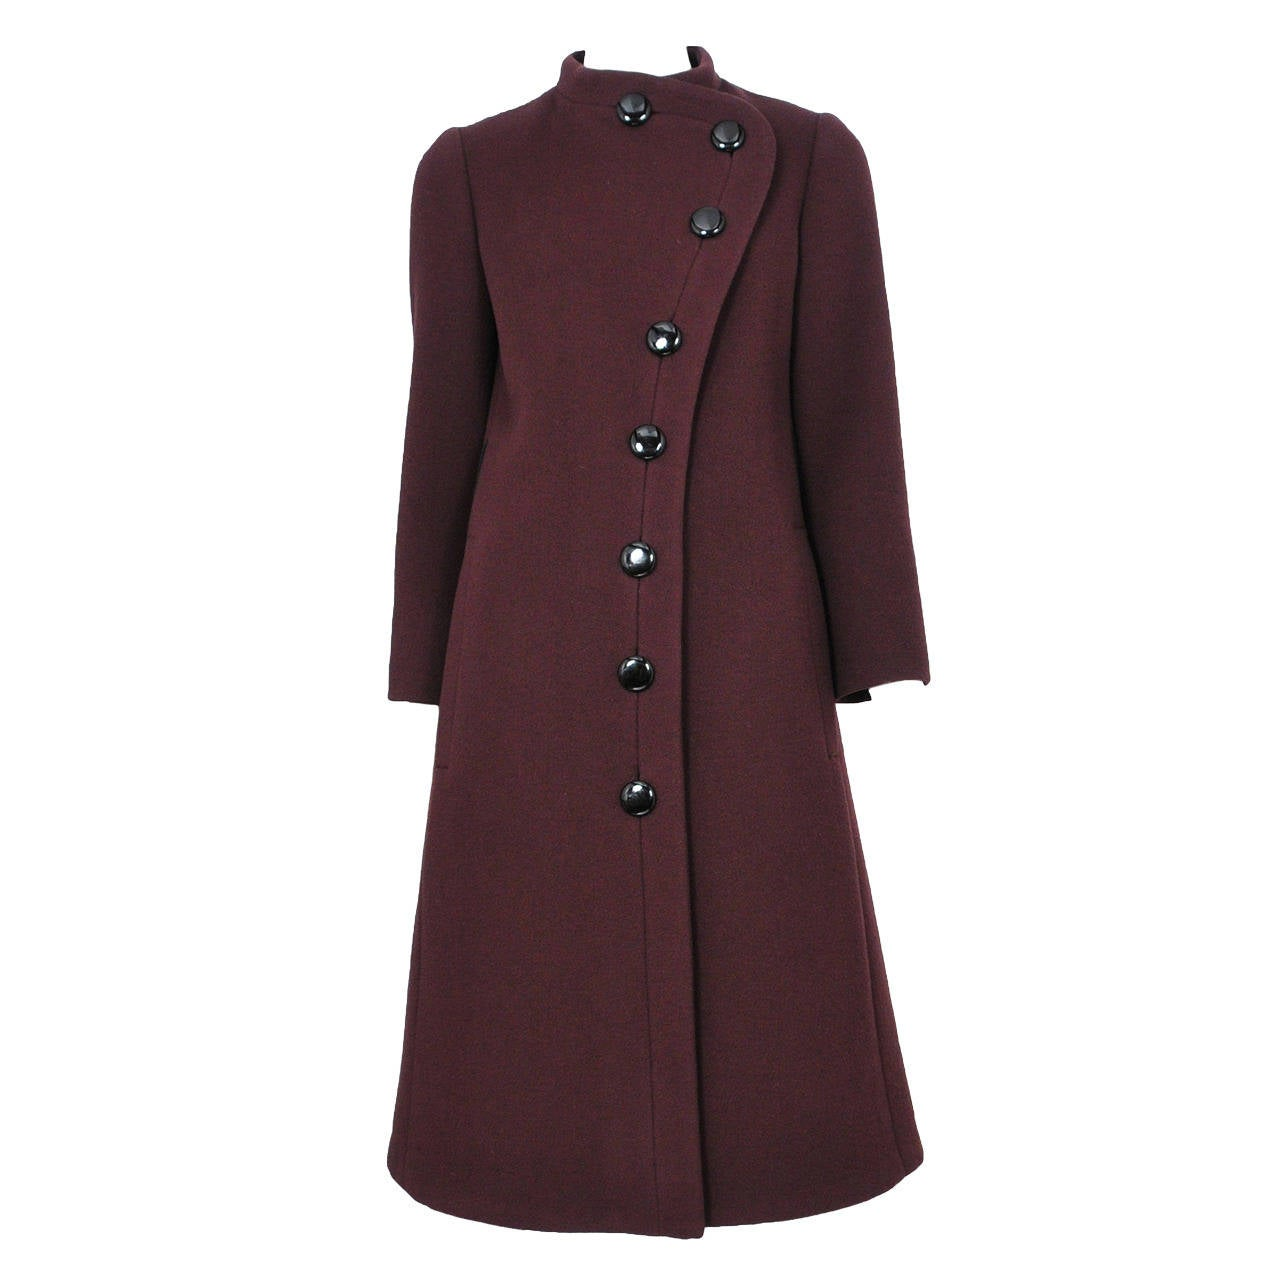 Pierre Cardin Brown Wool Coat 1